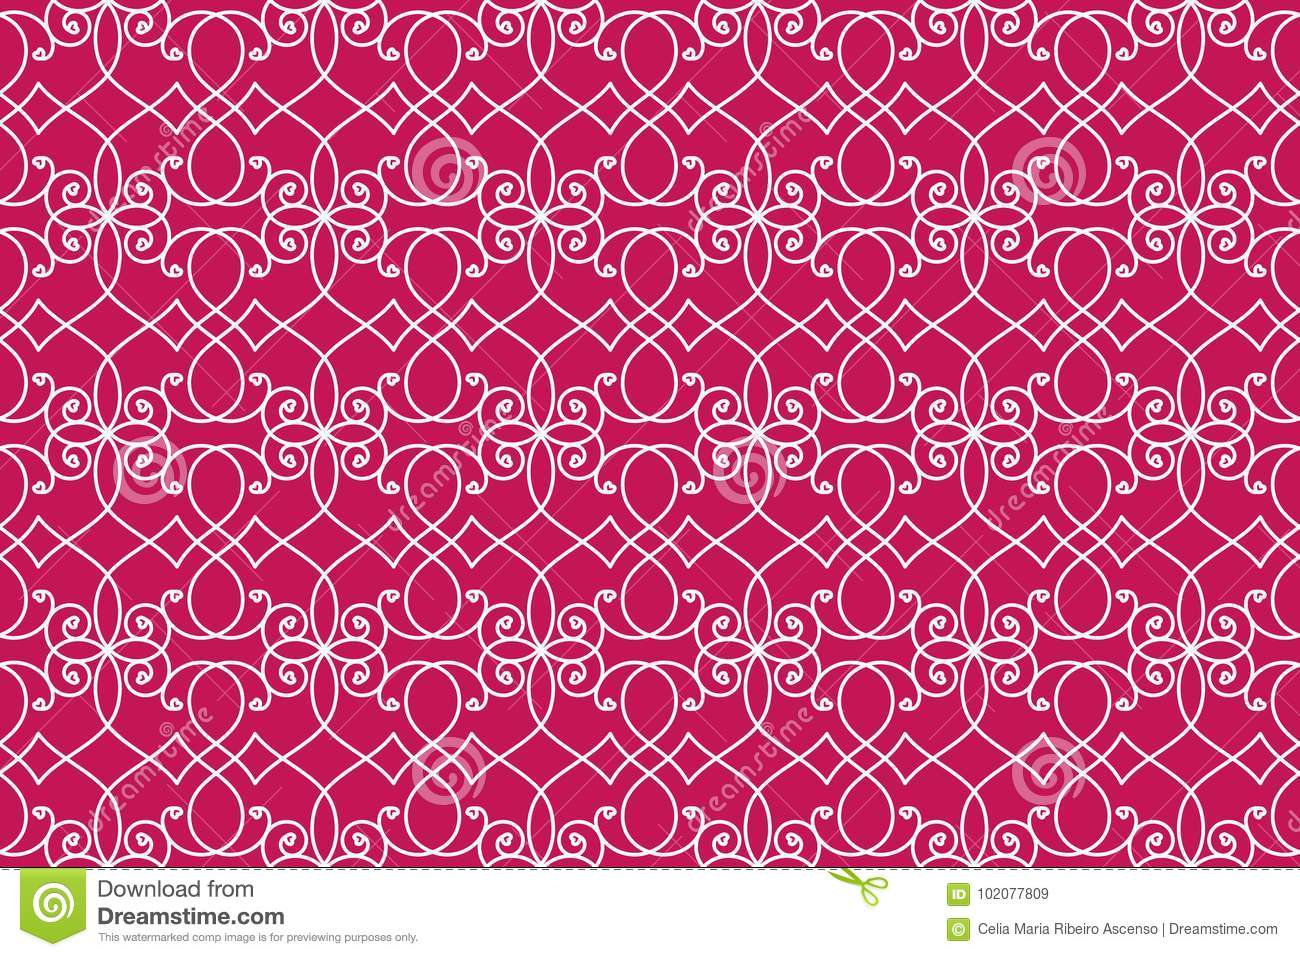 Abstract interlaced hearts detailed victorian wall wallpaper background. Seamless pattern.